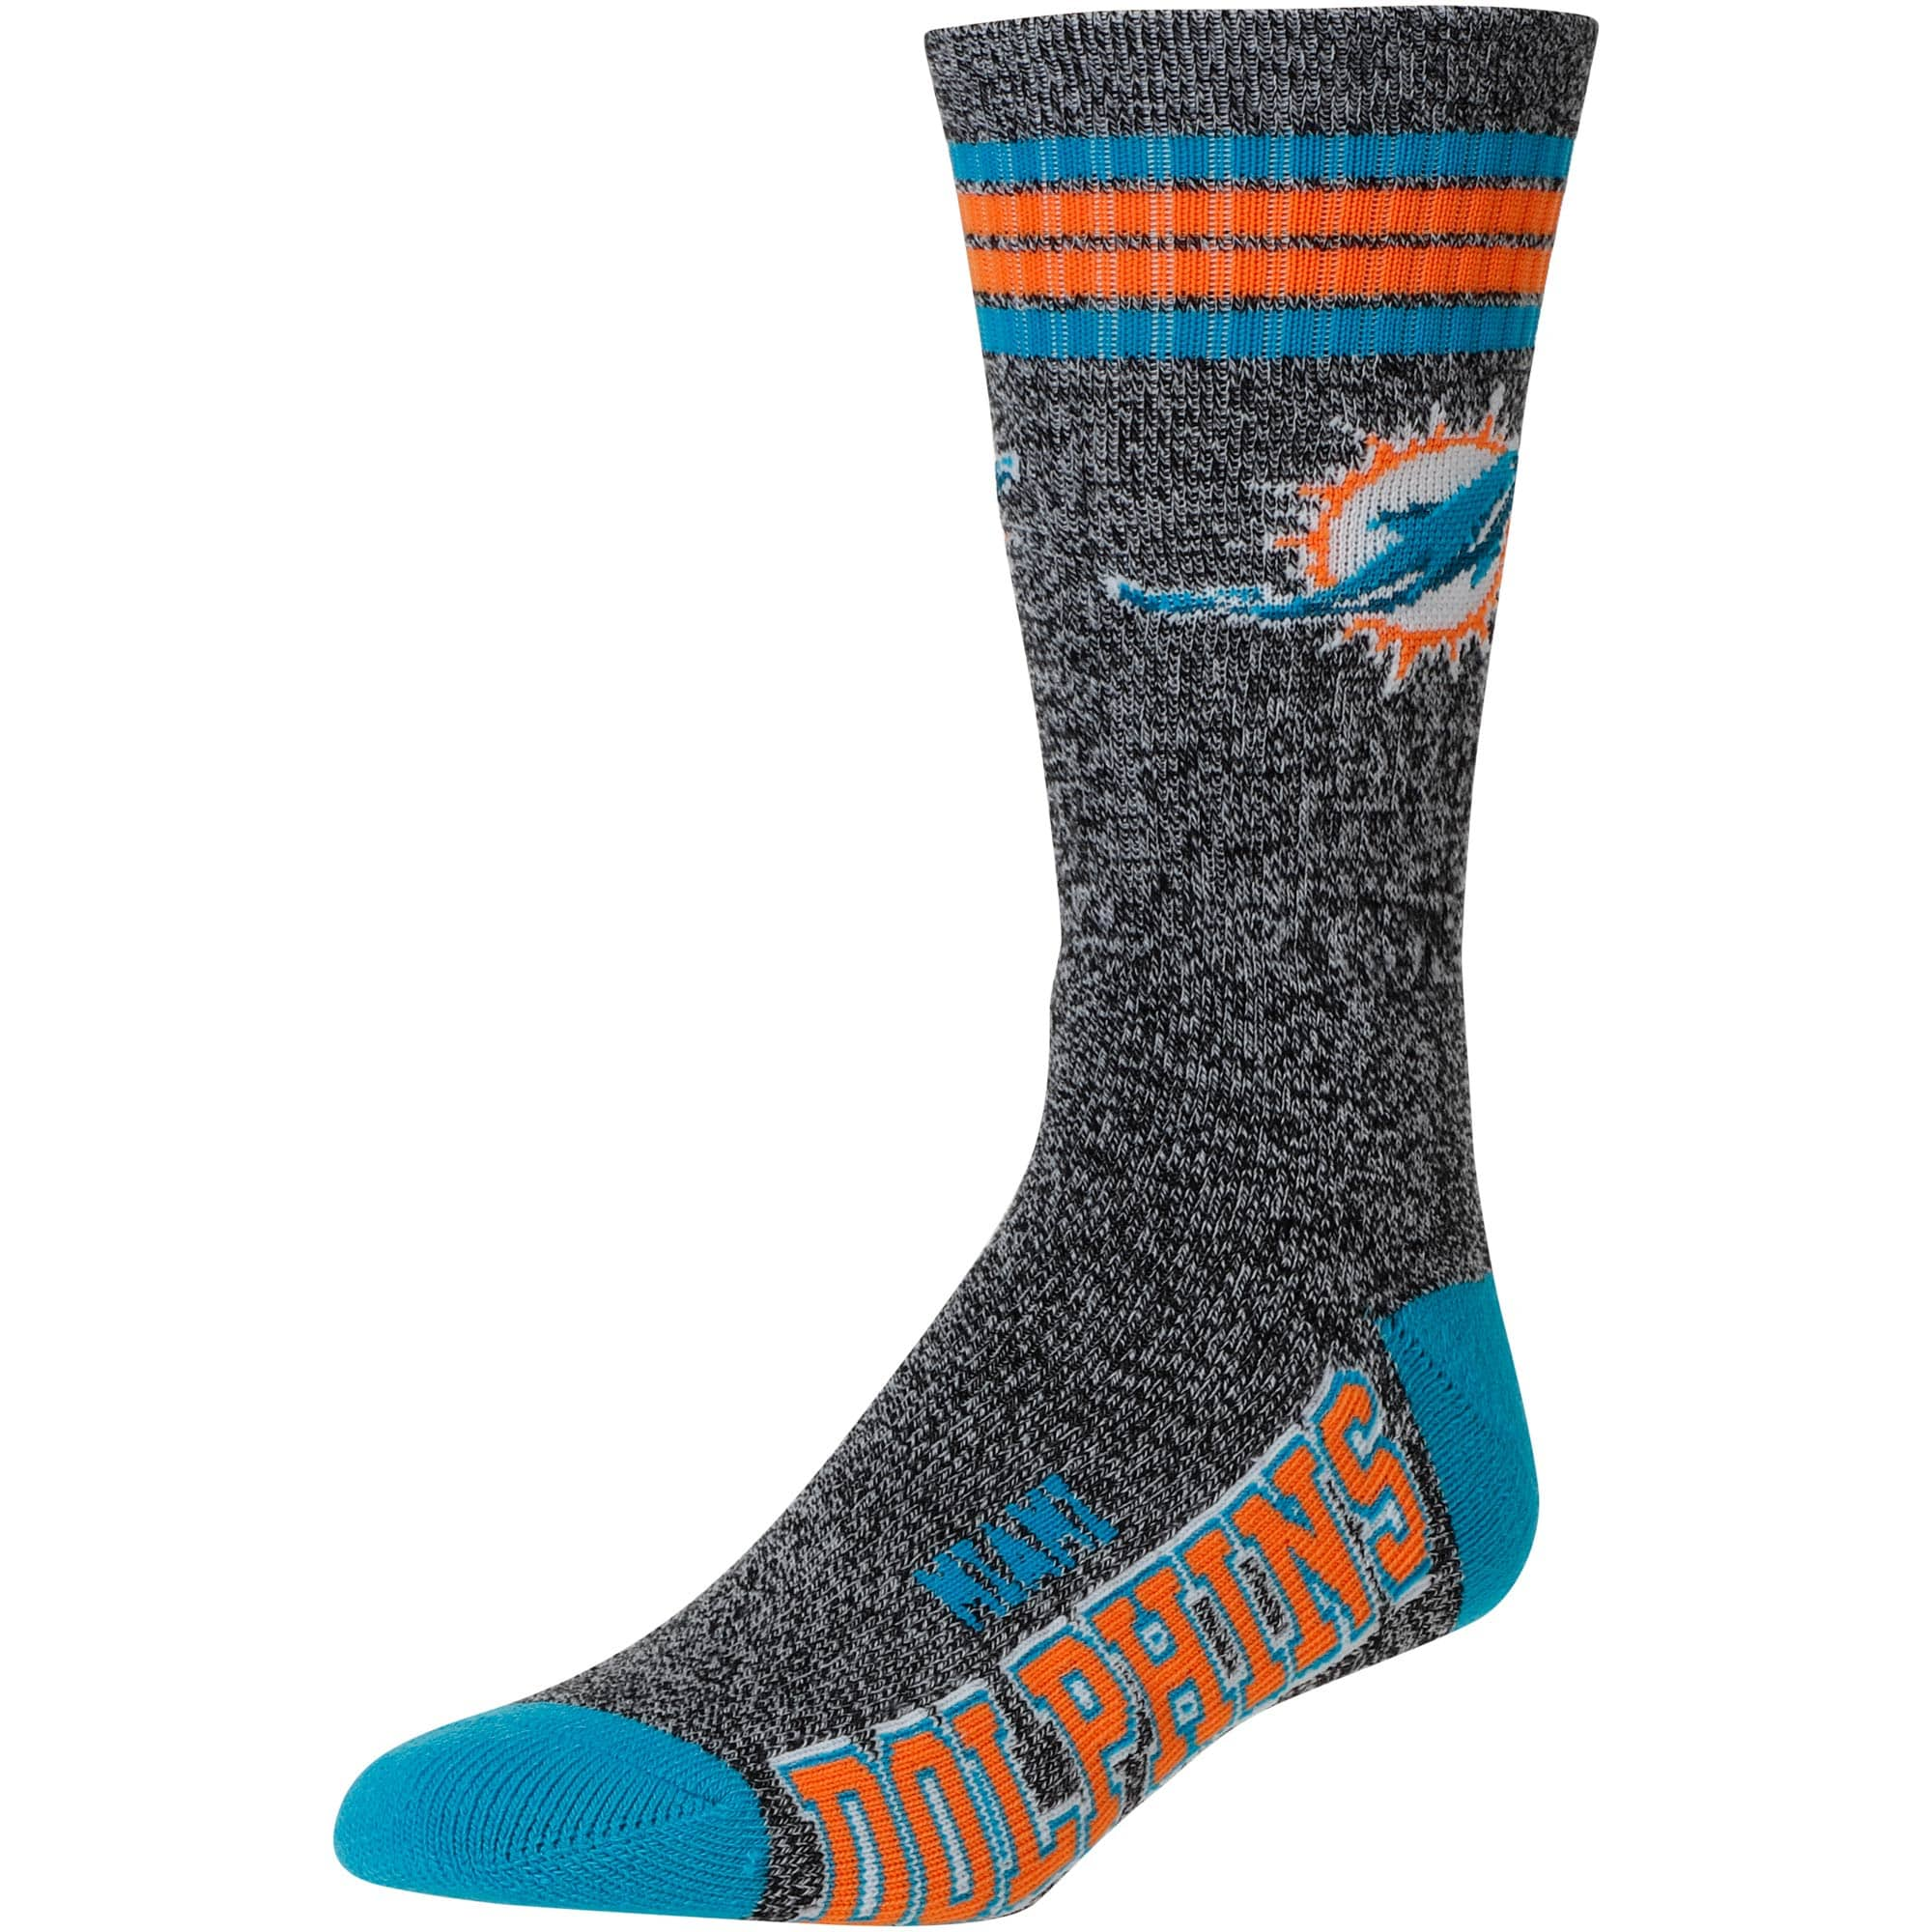 Miami Dolphins For Bare Feet Got Marble Crew Socks - Gray